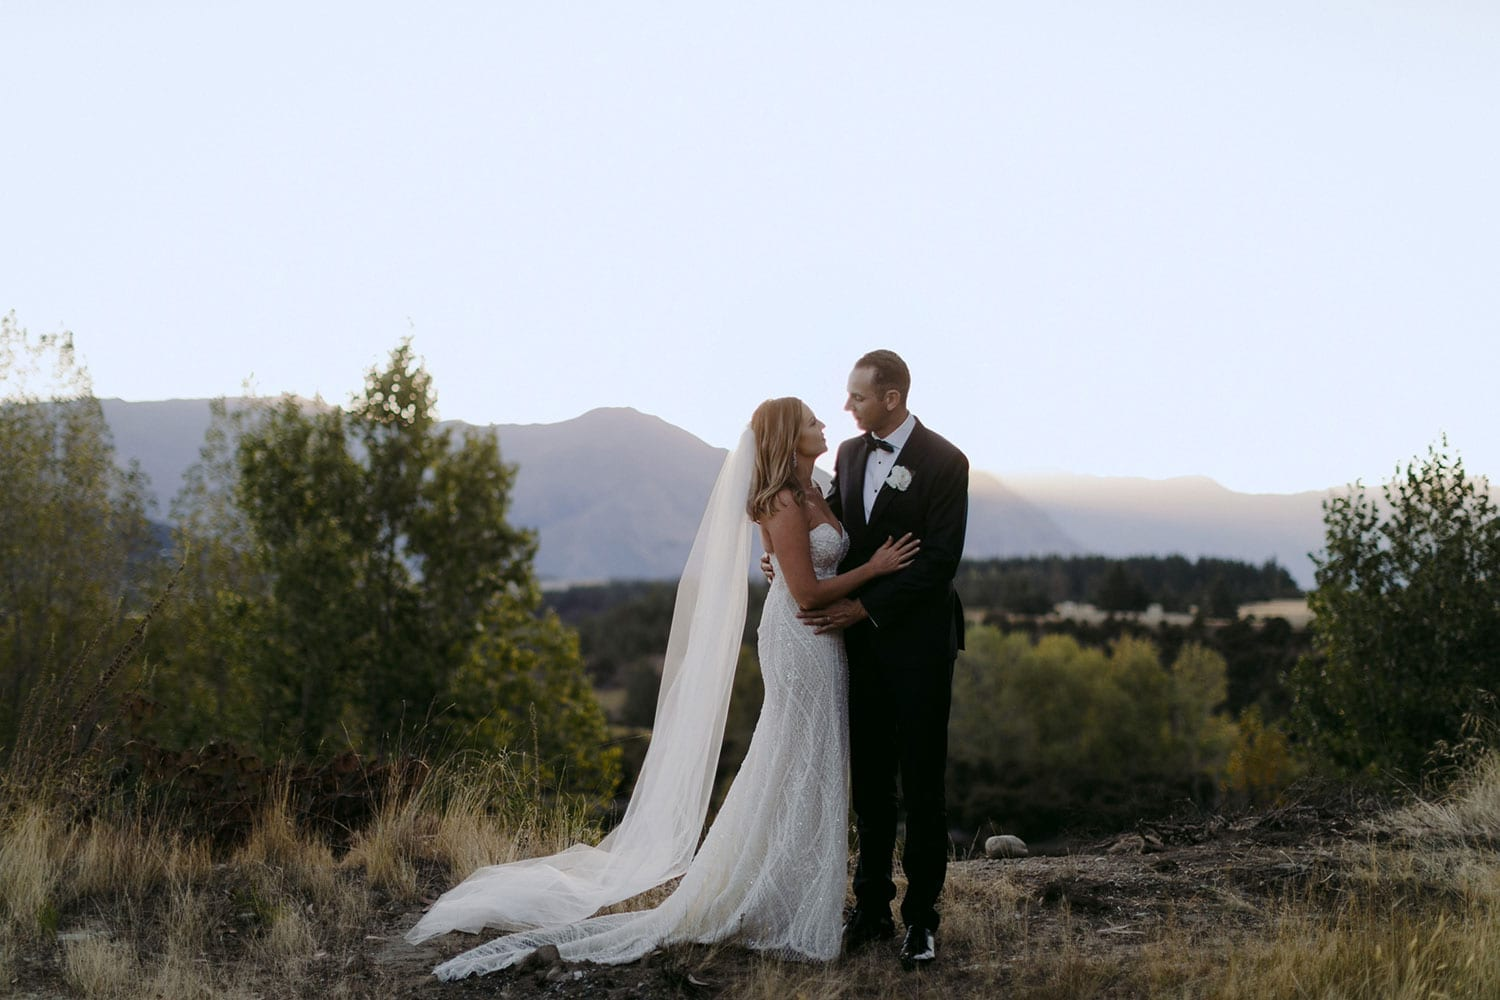 Vinka Design Features Real Weddings - bride in custom made gown, a combination of our Indi wedding dress with added beading appliqued and sewn by hand, over the top of a nude semi sheer base. Embrace with groom outdoors